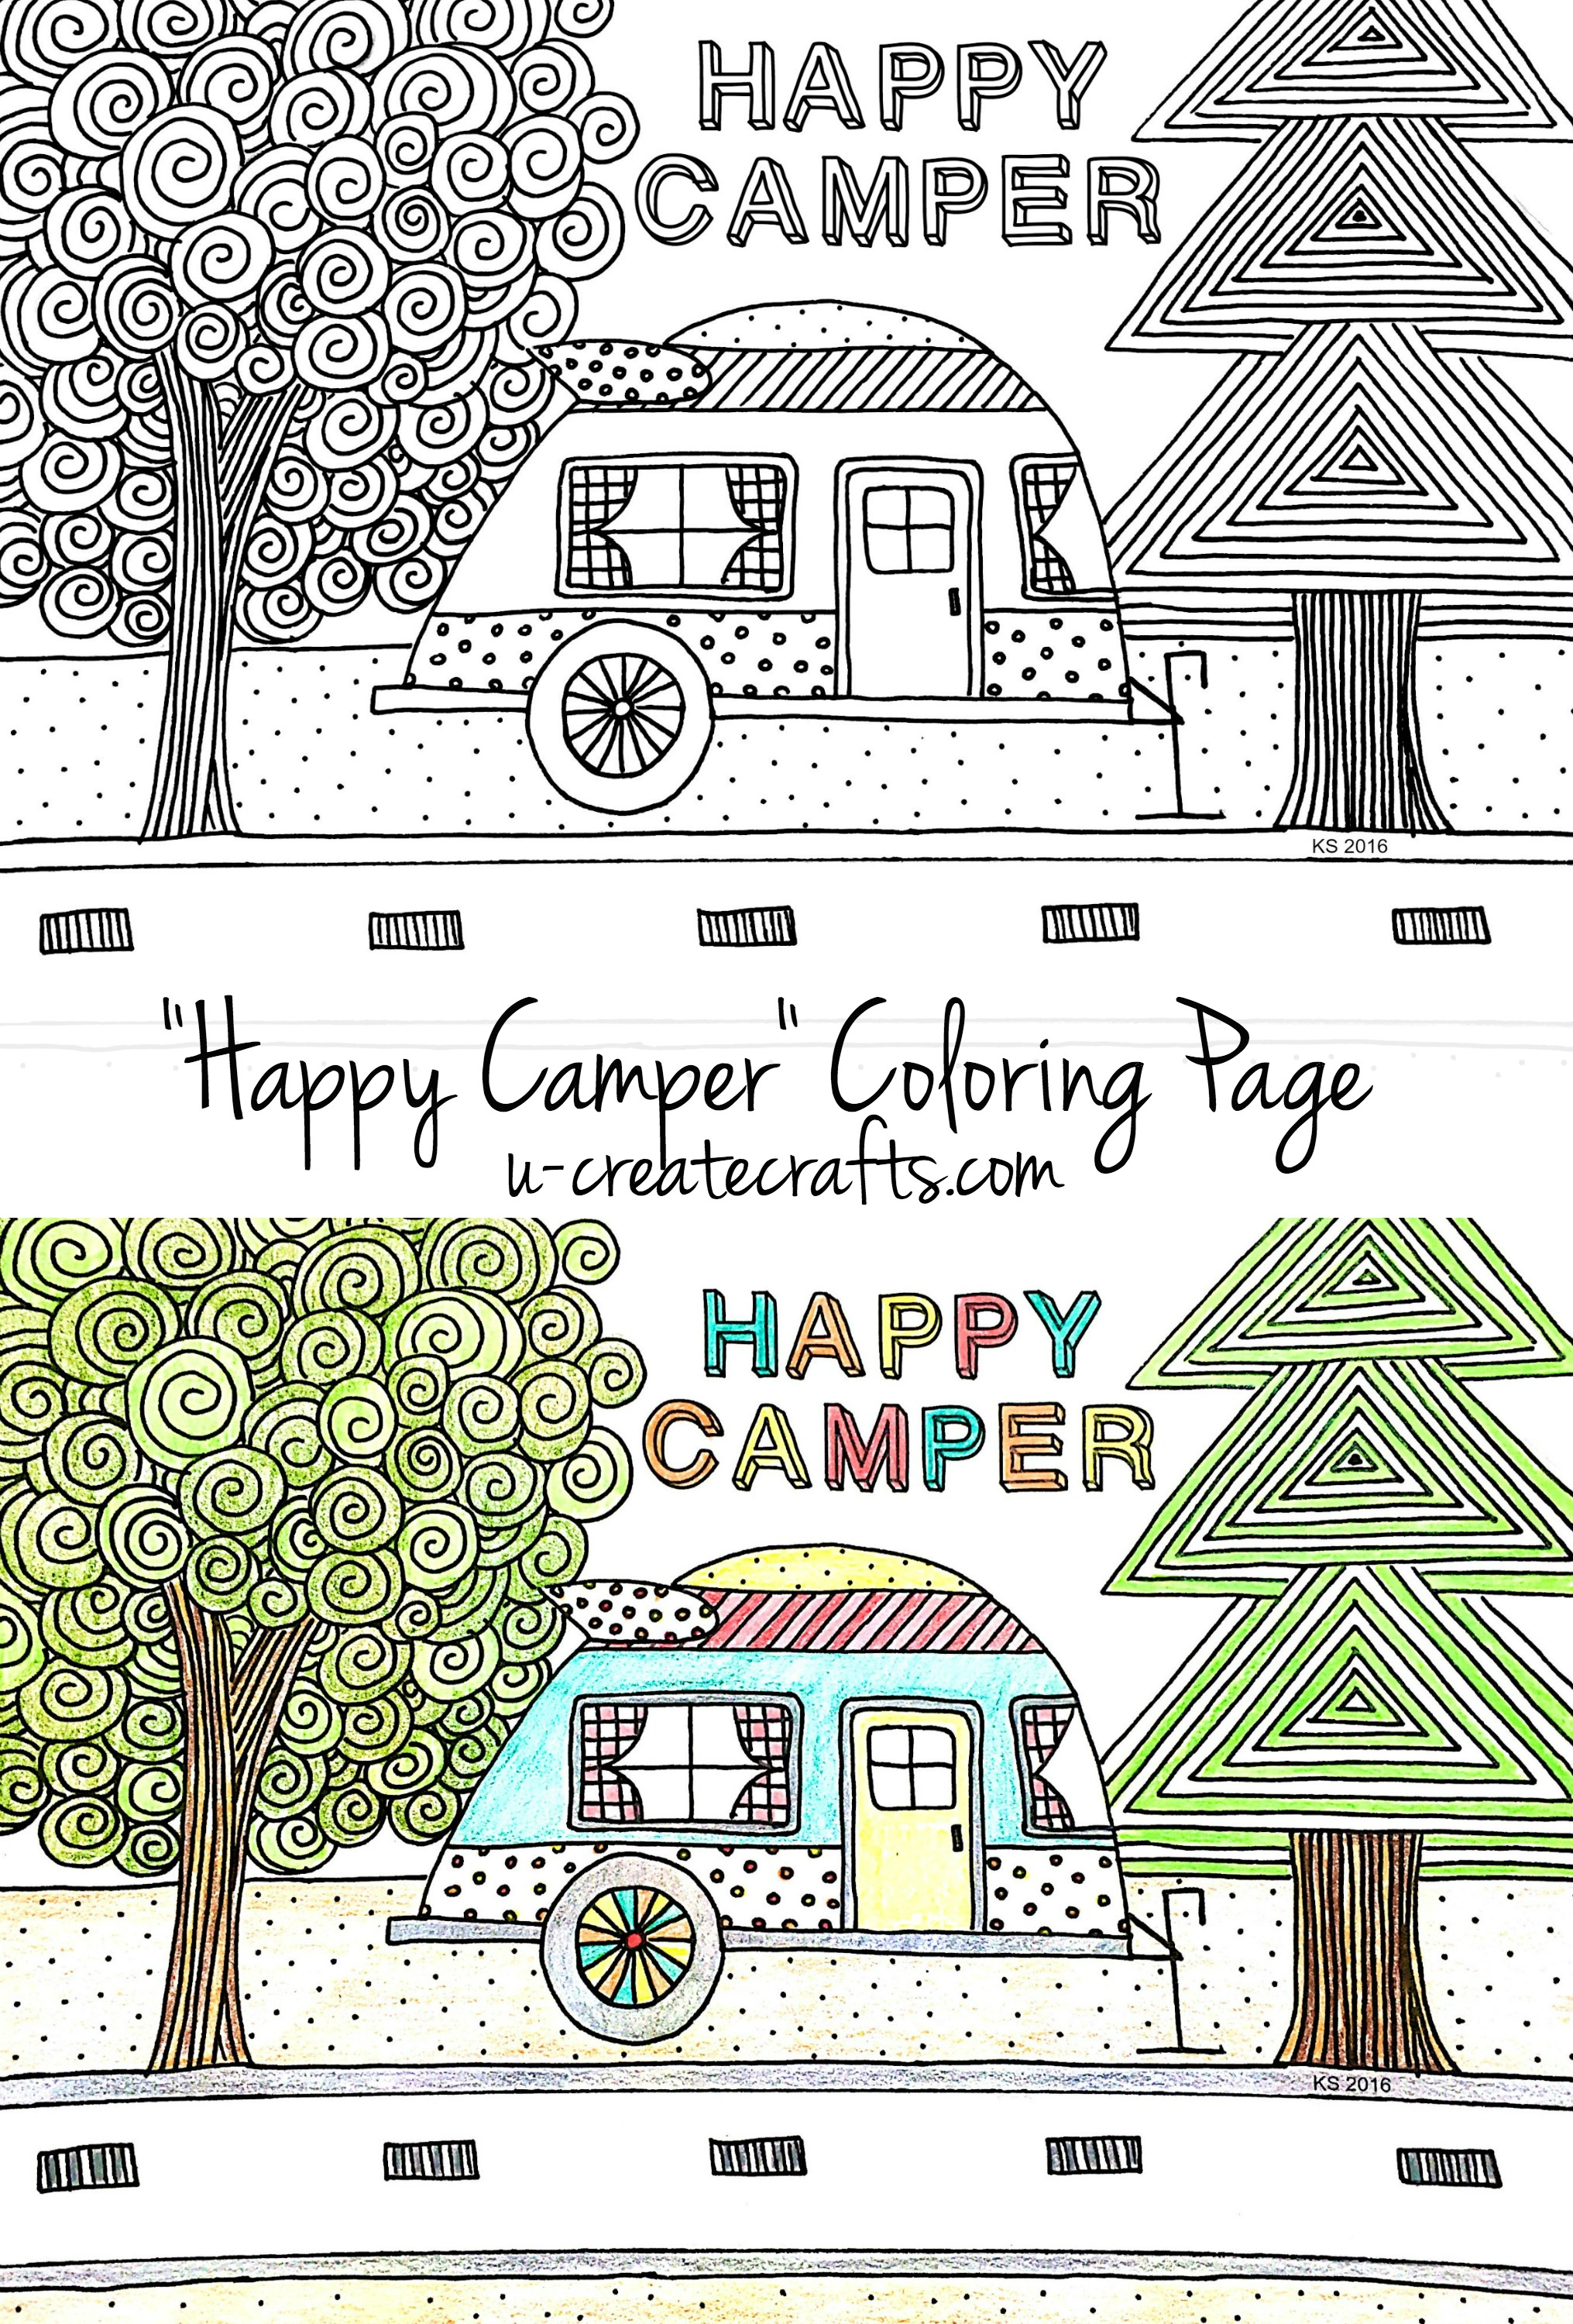 Happy Camper Coloring Page